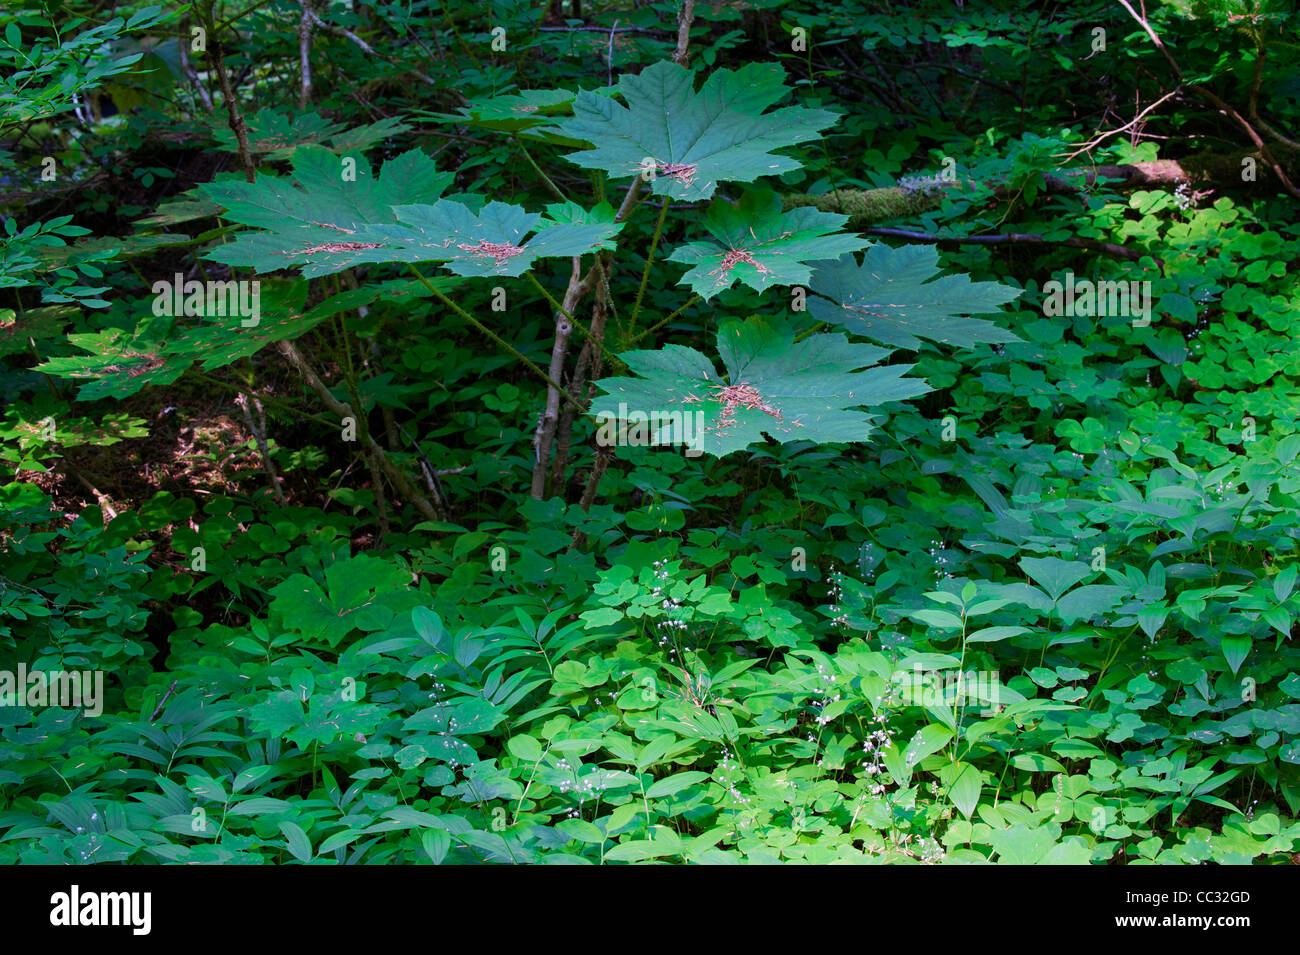 Forest plants in the Bull Run Watershed near Mount Hood, Oregon. - Stock Image